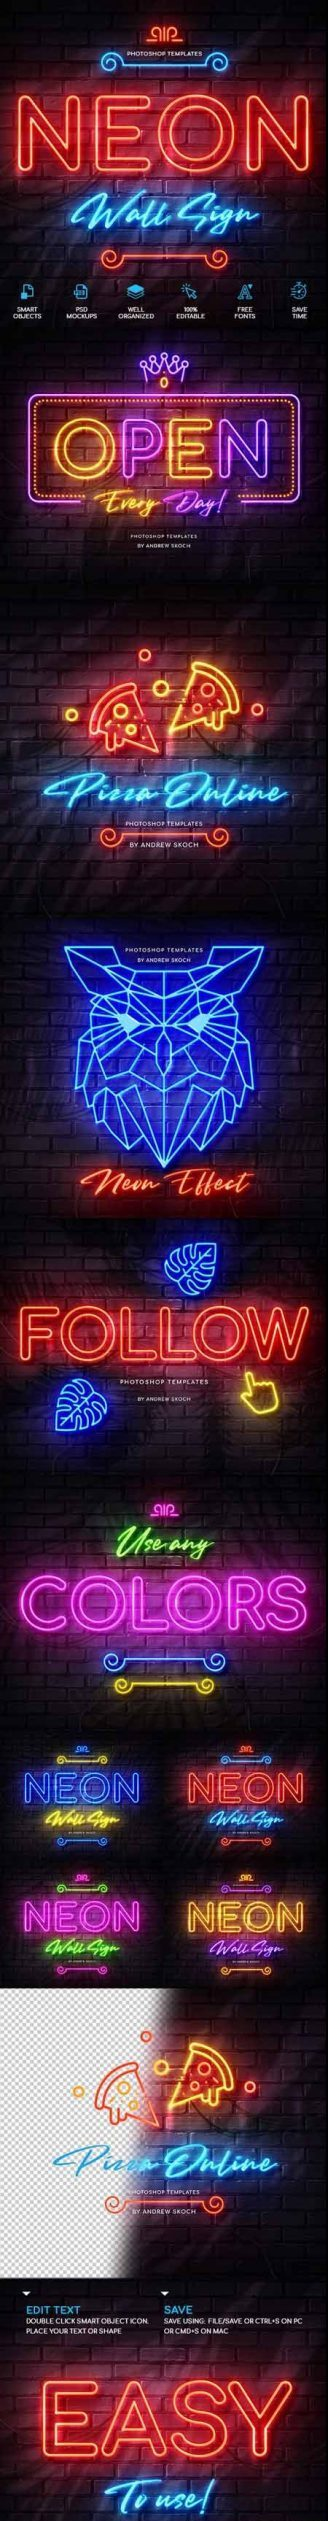 Neon Wall Sign Creator 26127266 Free Download